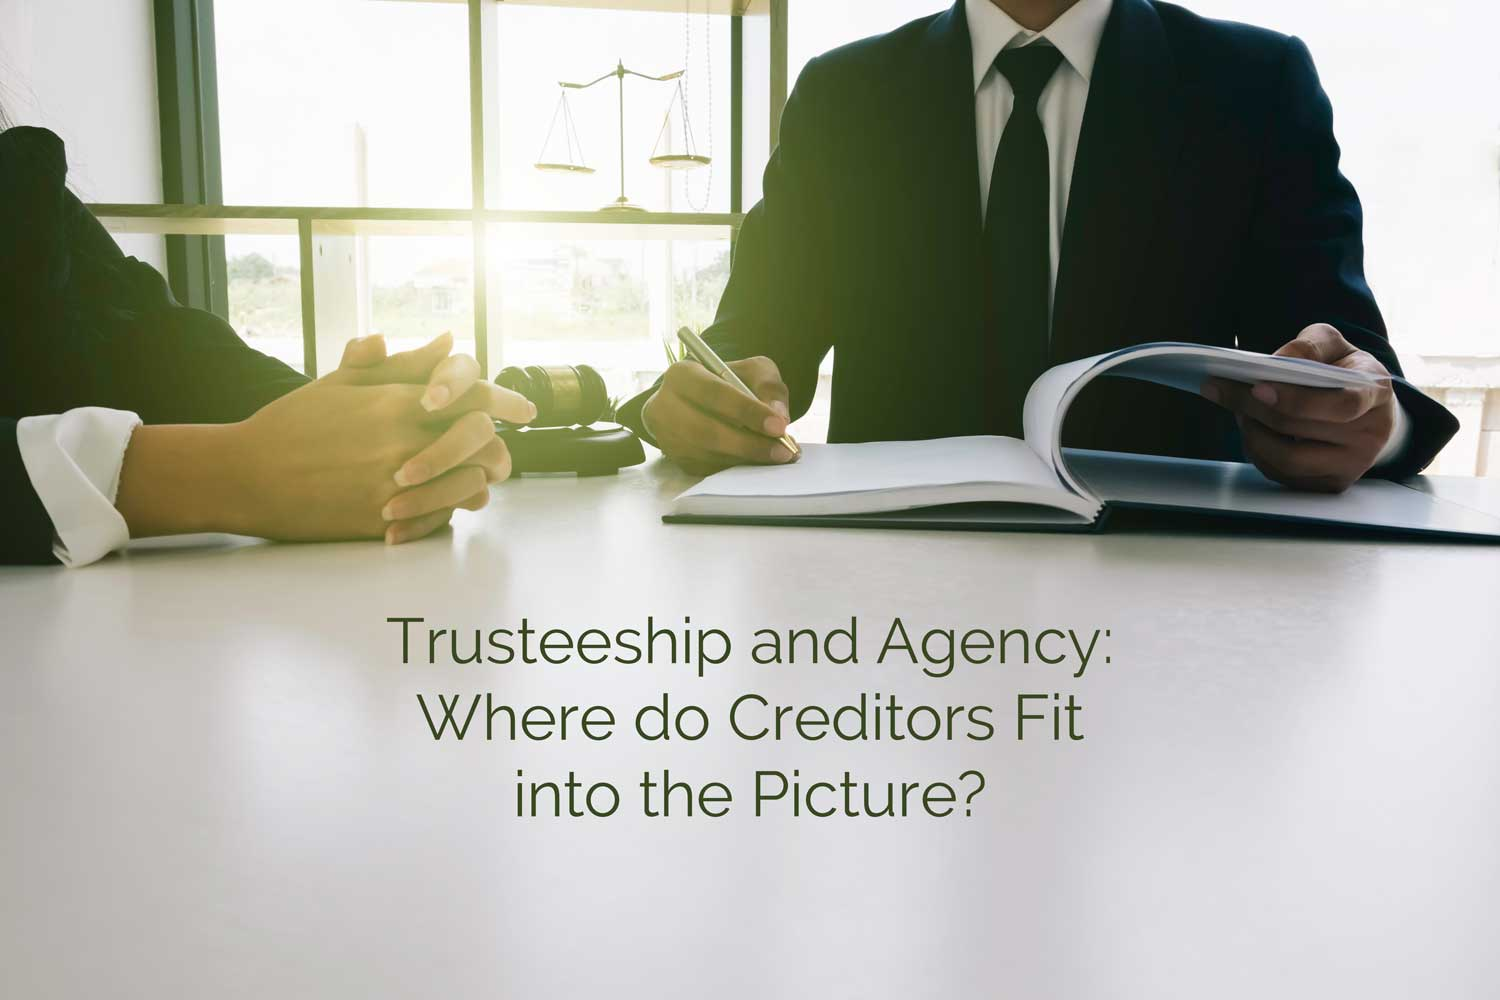 Trusteeship and Agency-Where do Creditors Fit into the Picture?